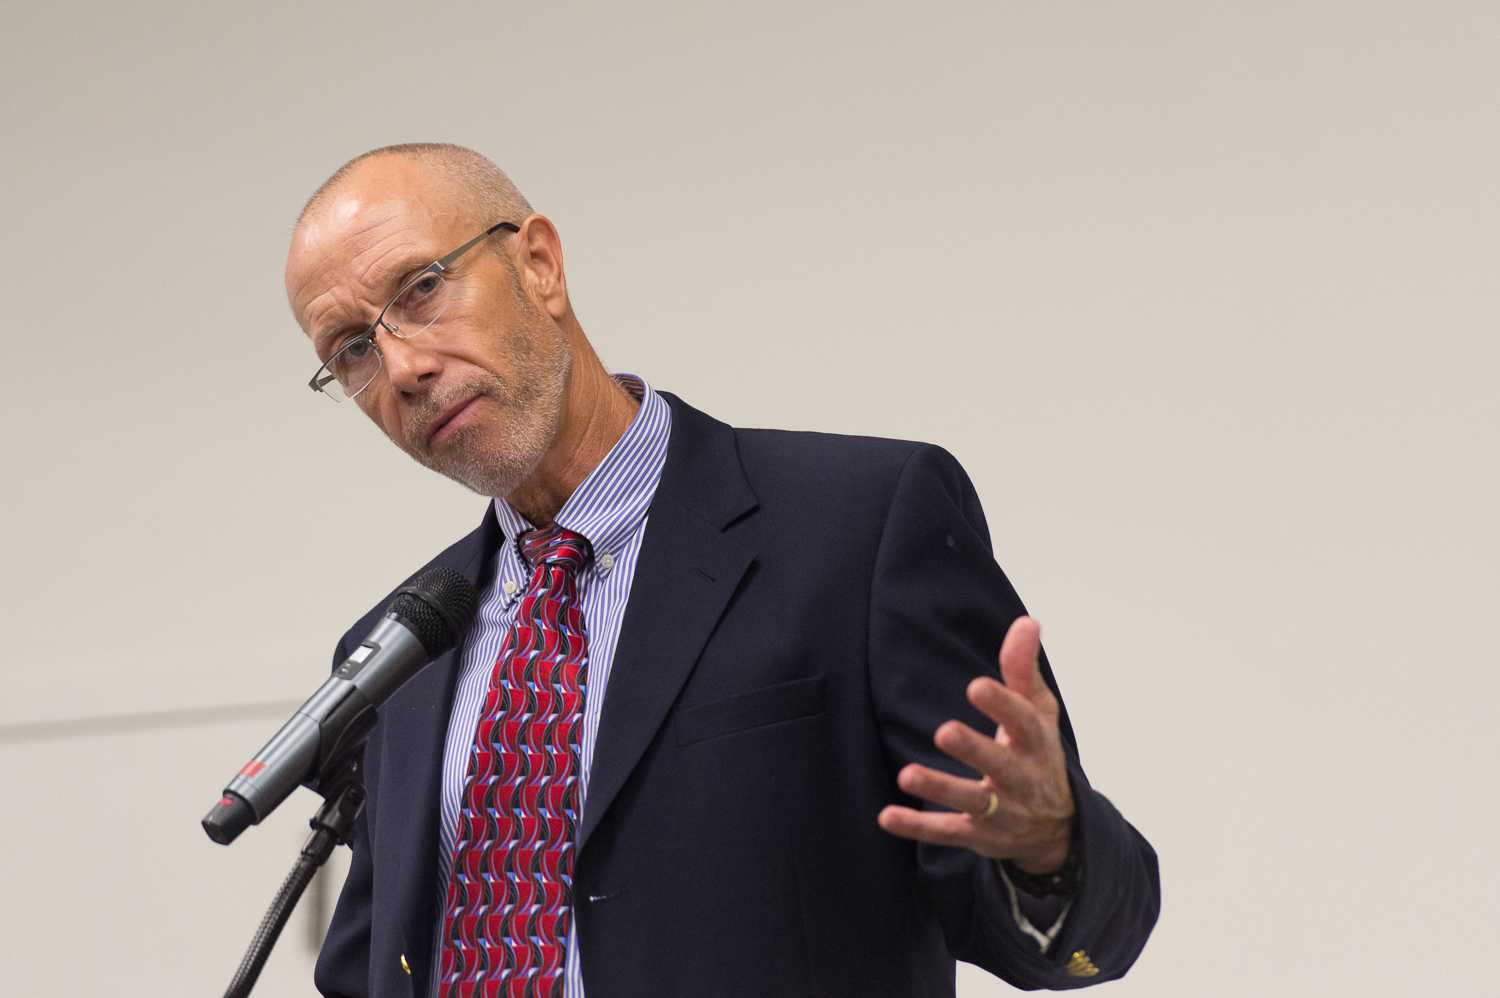 """Dr. Marshall DeRosa, a political science professor at FAU, put on this event along with the Apgar Foundation and James Madison Institute. Dr. DeRosa's goal with putting on this event was """"to heighten FAU's profile in the community regarding public policy issues important to Floridians."""""""